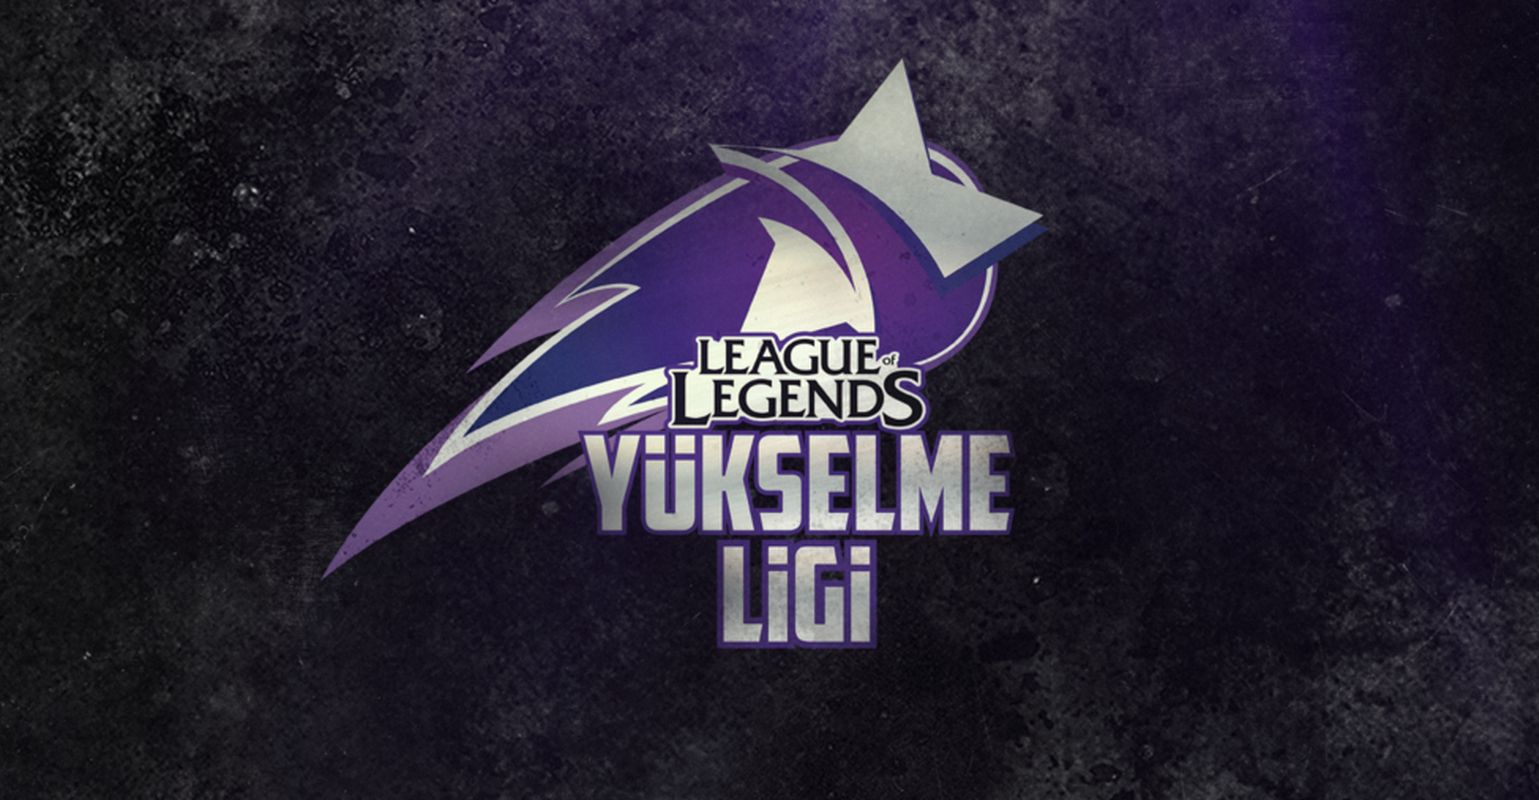 League of Legends - Yükselme Ligi